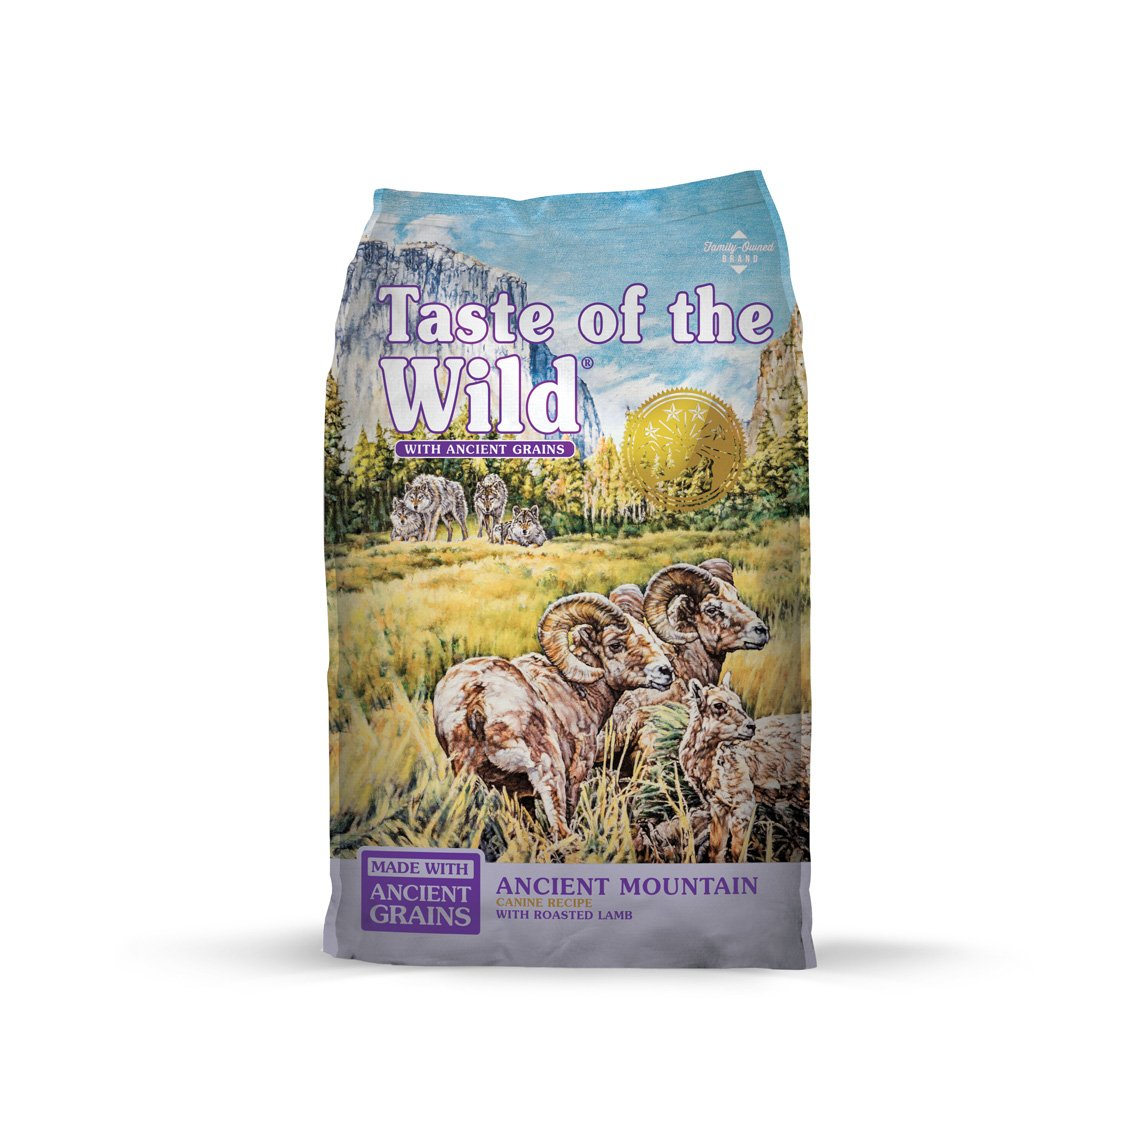 Taste of the Wild Ancient Grains Dry Dog Food